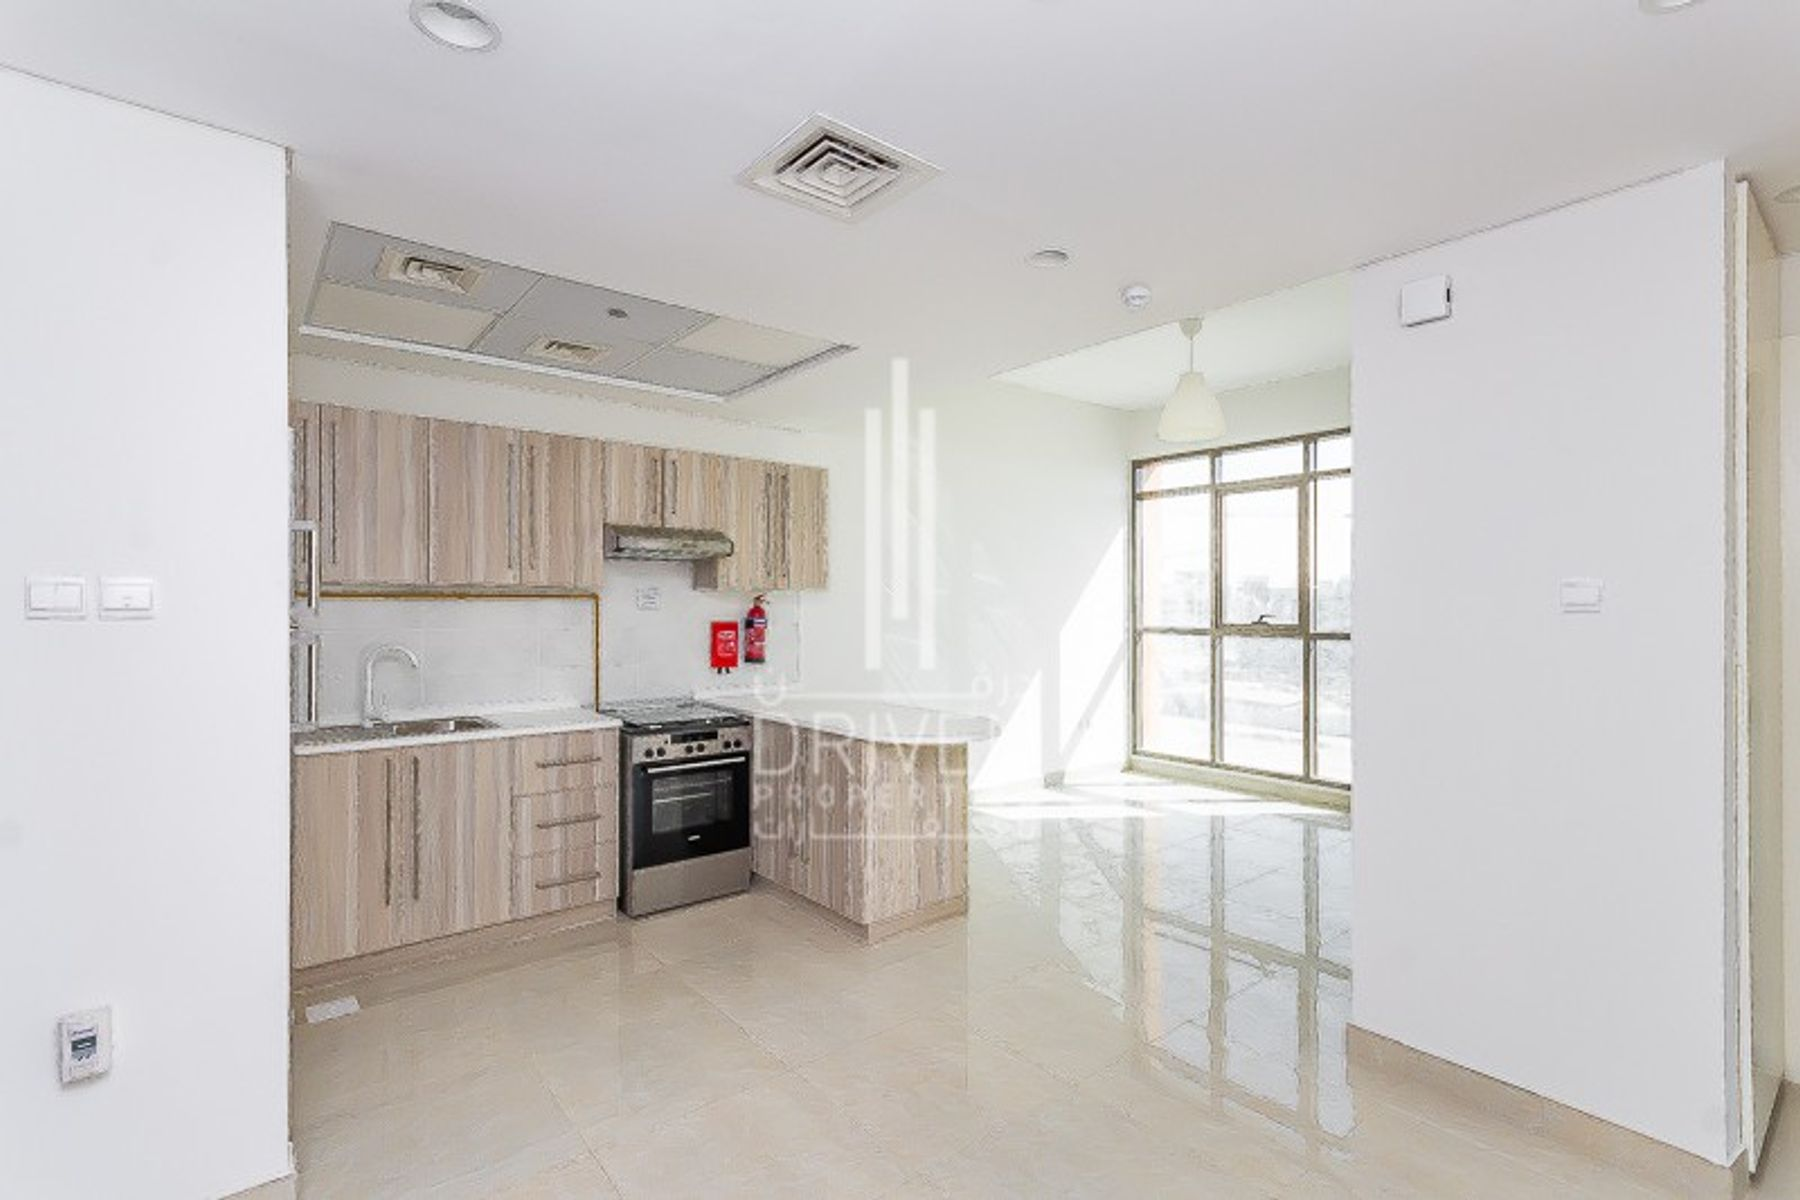 For Sale Brand New Bright 2 BR Apartment